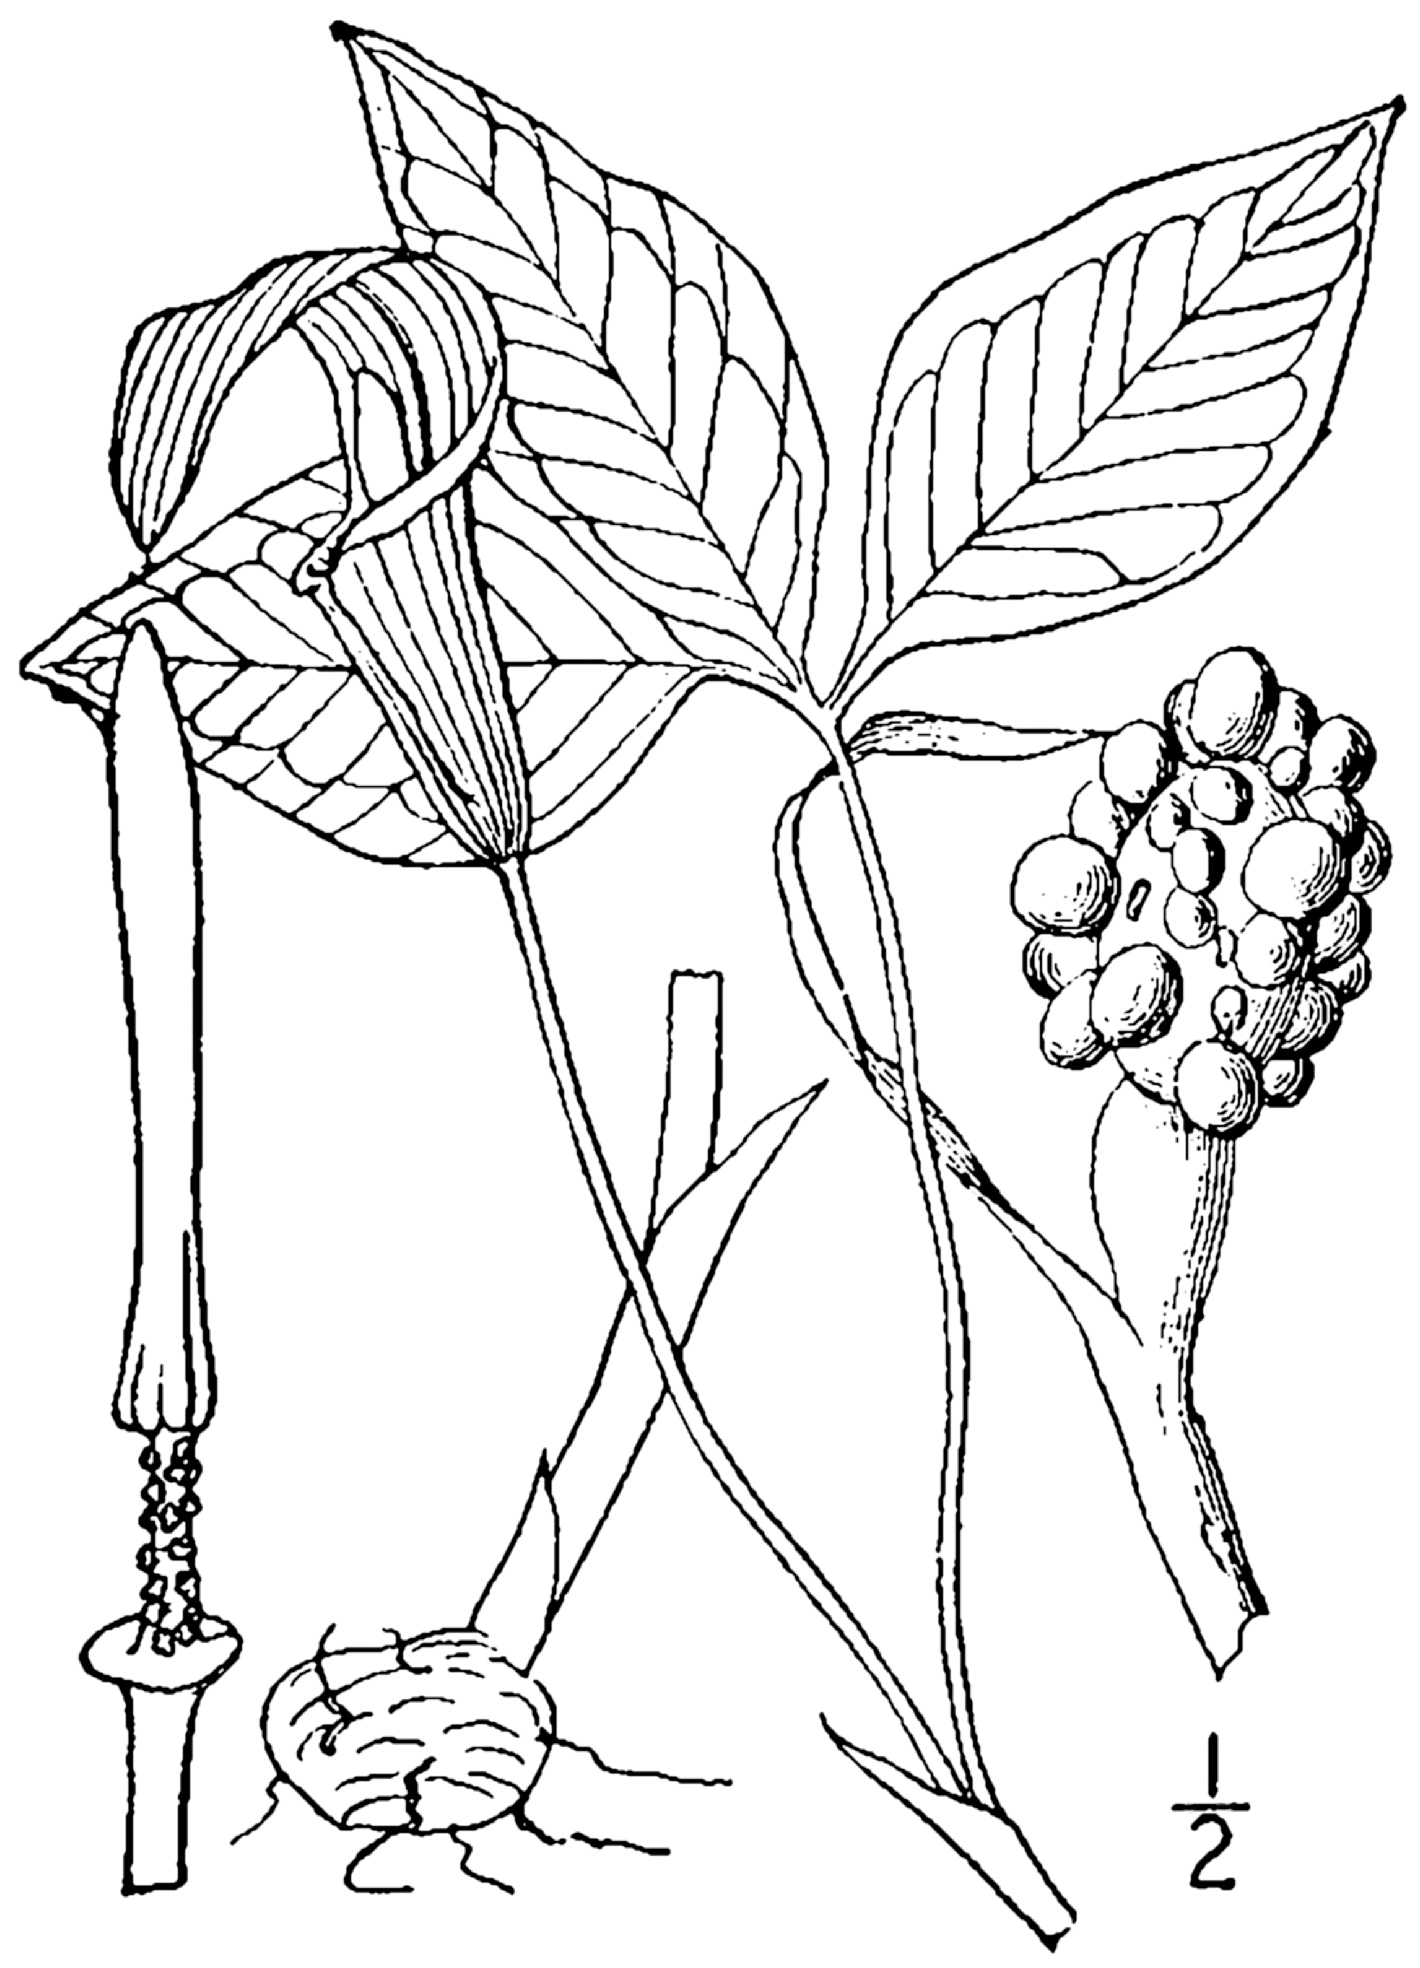 A drawing of Jack-in-the-pulpit shows off the plant's three leaf structure.